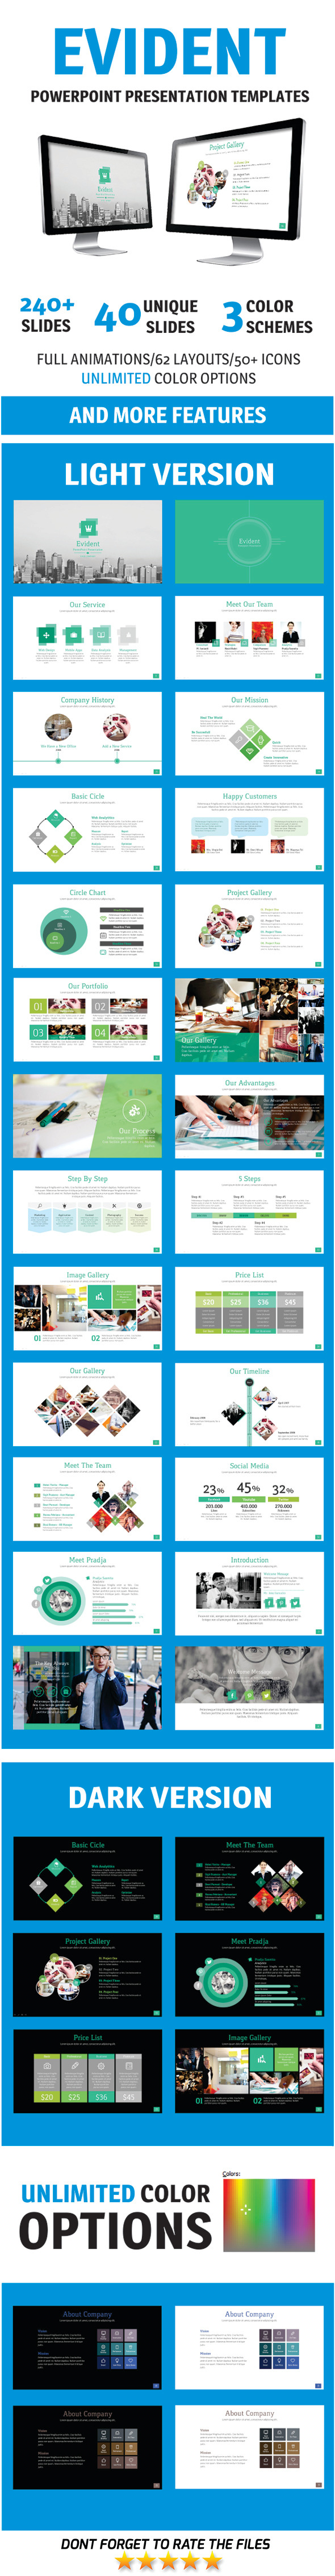 GraphicRiver Envident PowerPoint Template 11253516